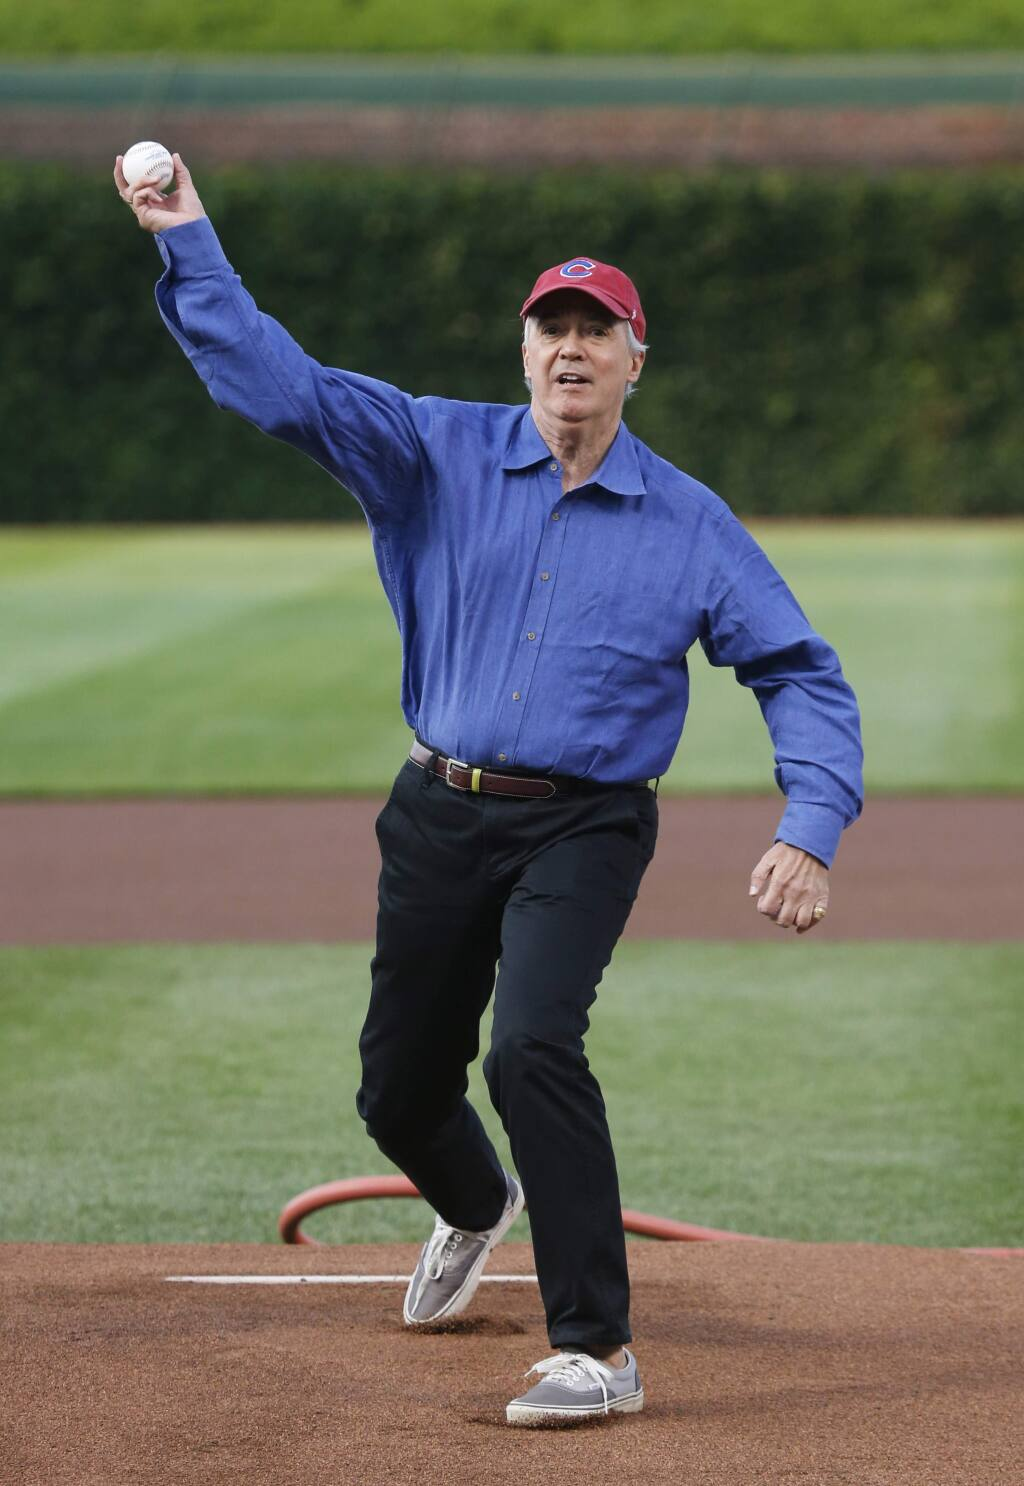 NPR reporter Scott Simon throws out a ceremonial first pitch before a baseball game between the Chicago Cubs and the Colorado Rockies Monday, July 28, 2014, in Chicago. (AP Photo/Charles Rex Arbogast)